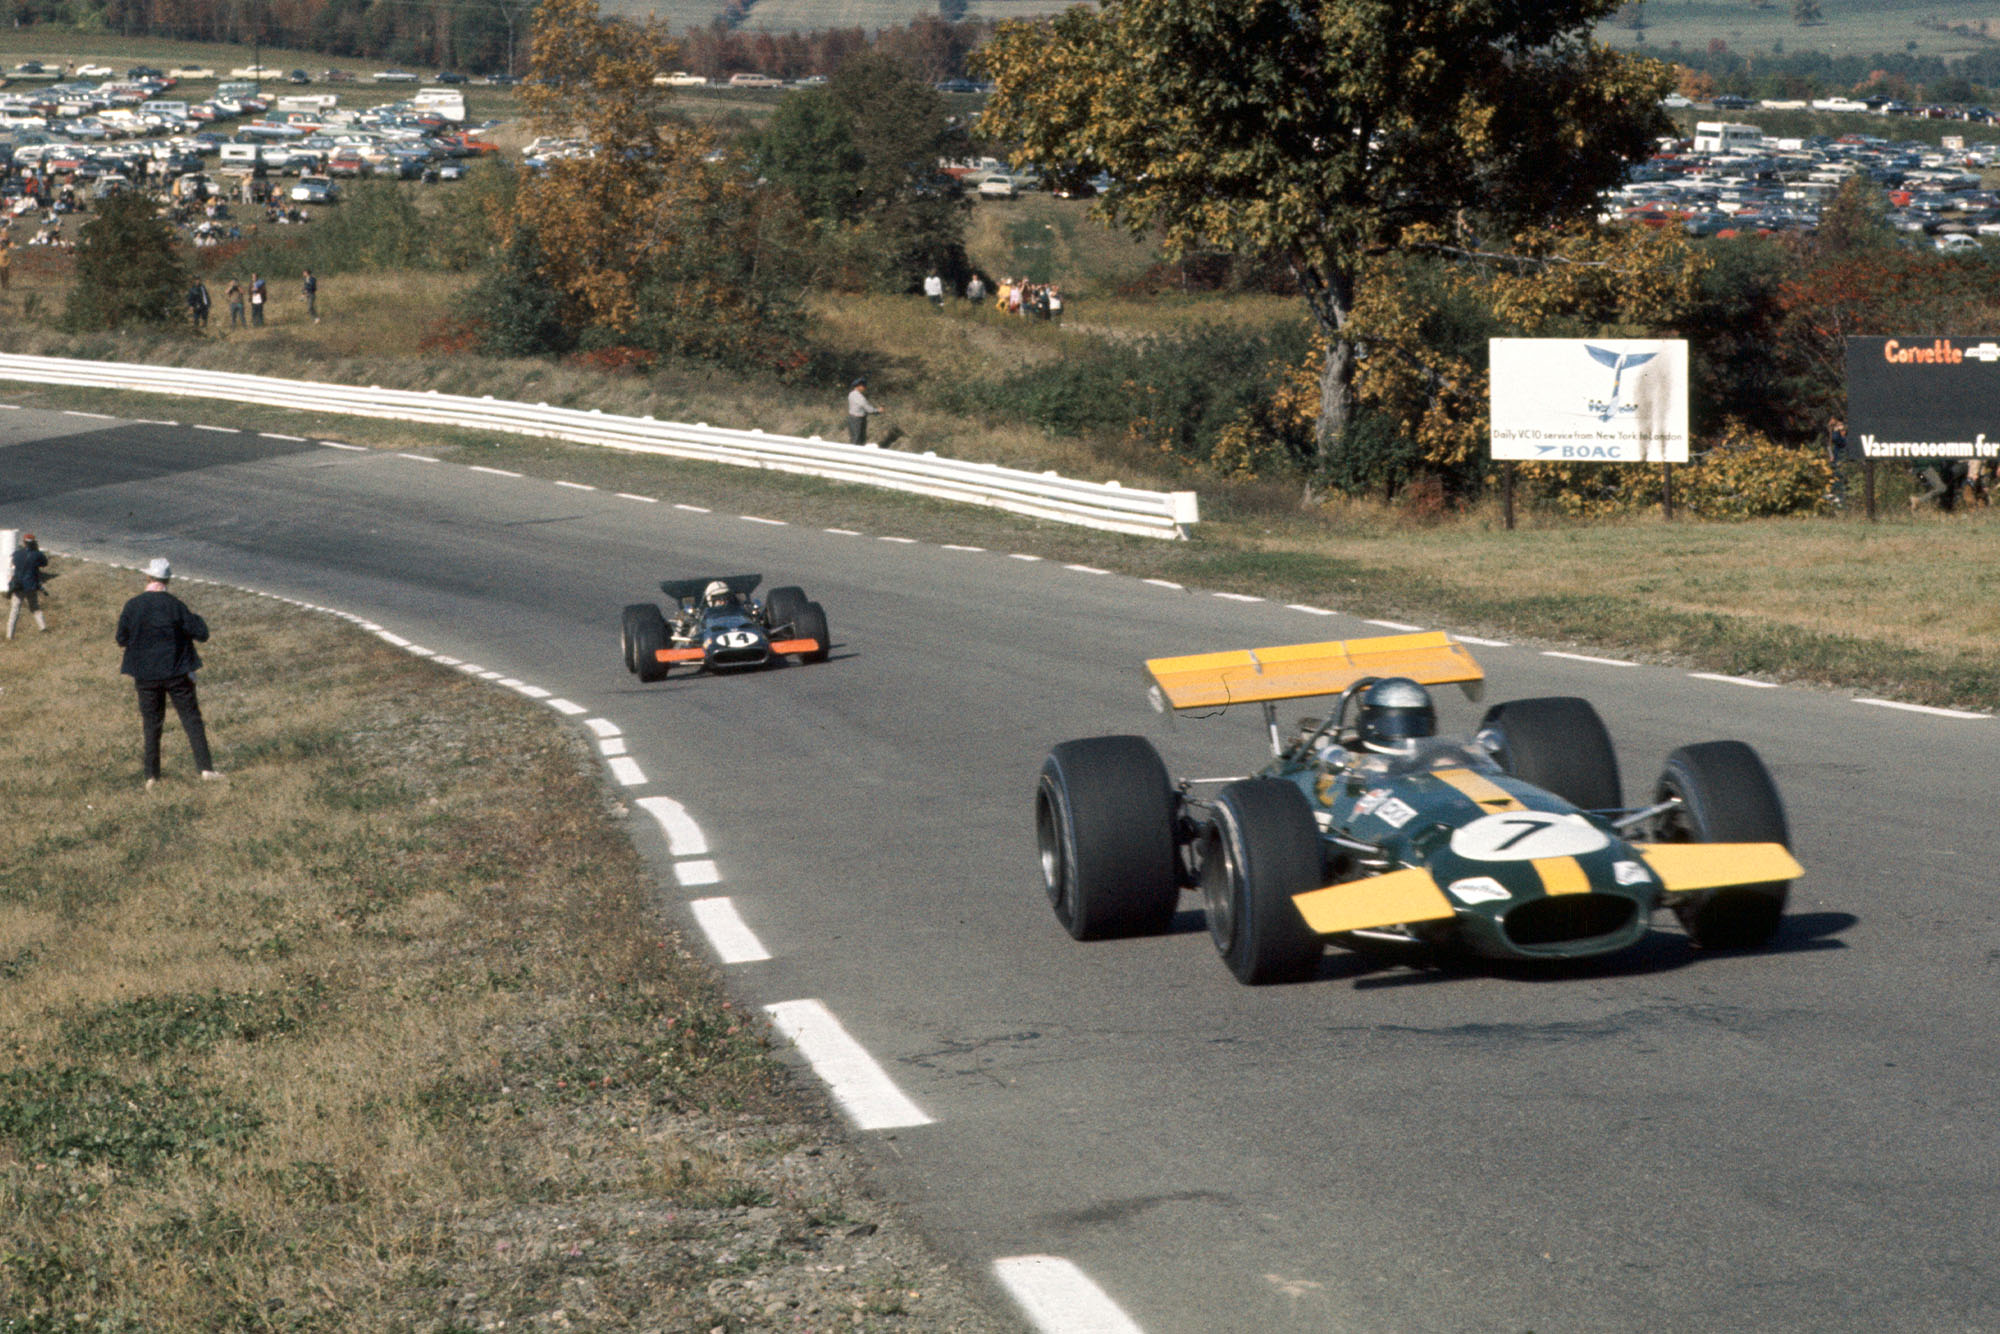 Jacky Ickx drivng for Brabham at the 1969 United States Grand Prix.